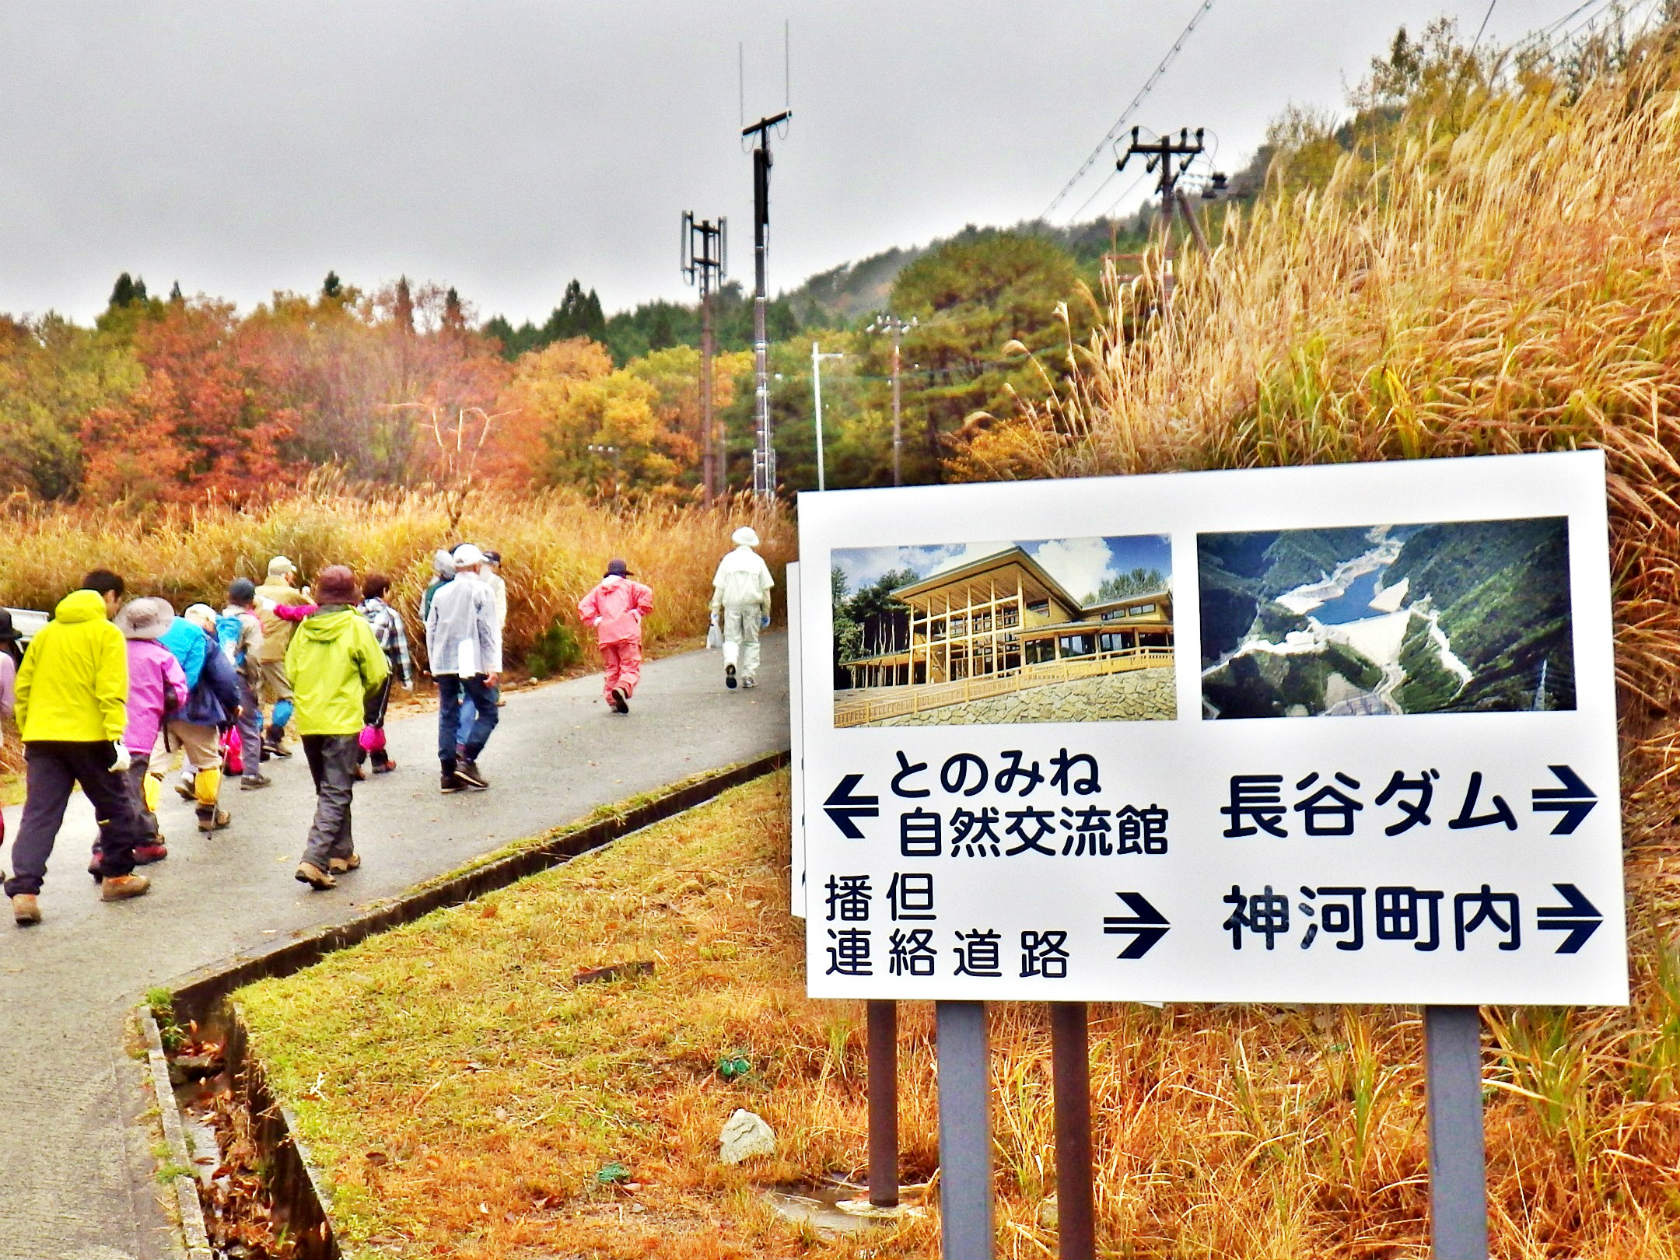 02a 砥峰山登山口へ向かう